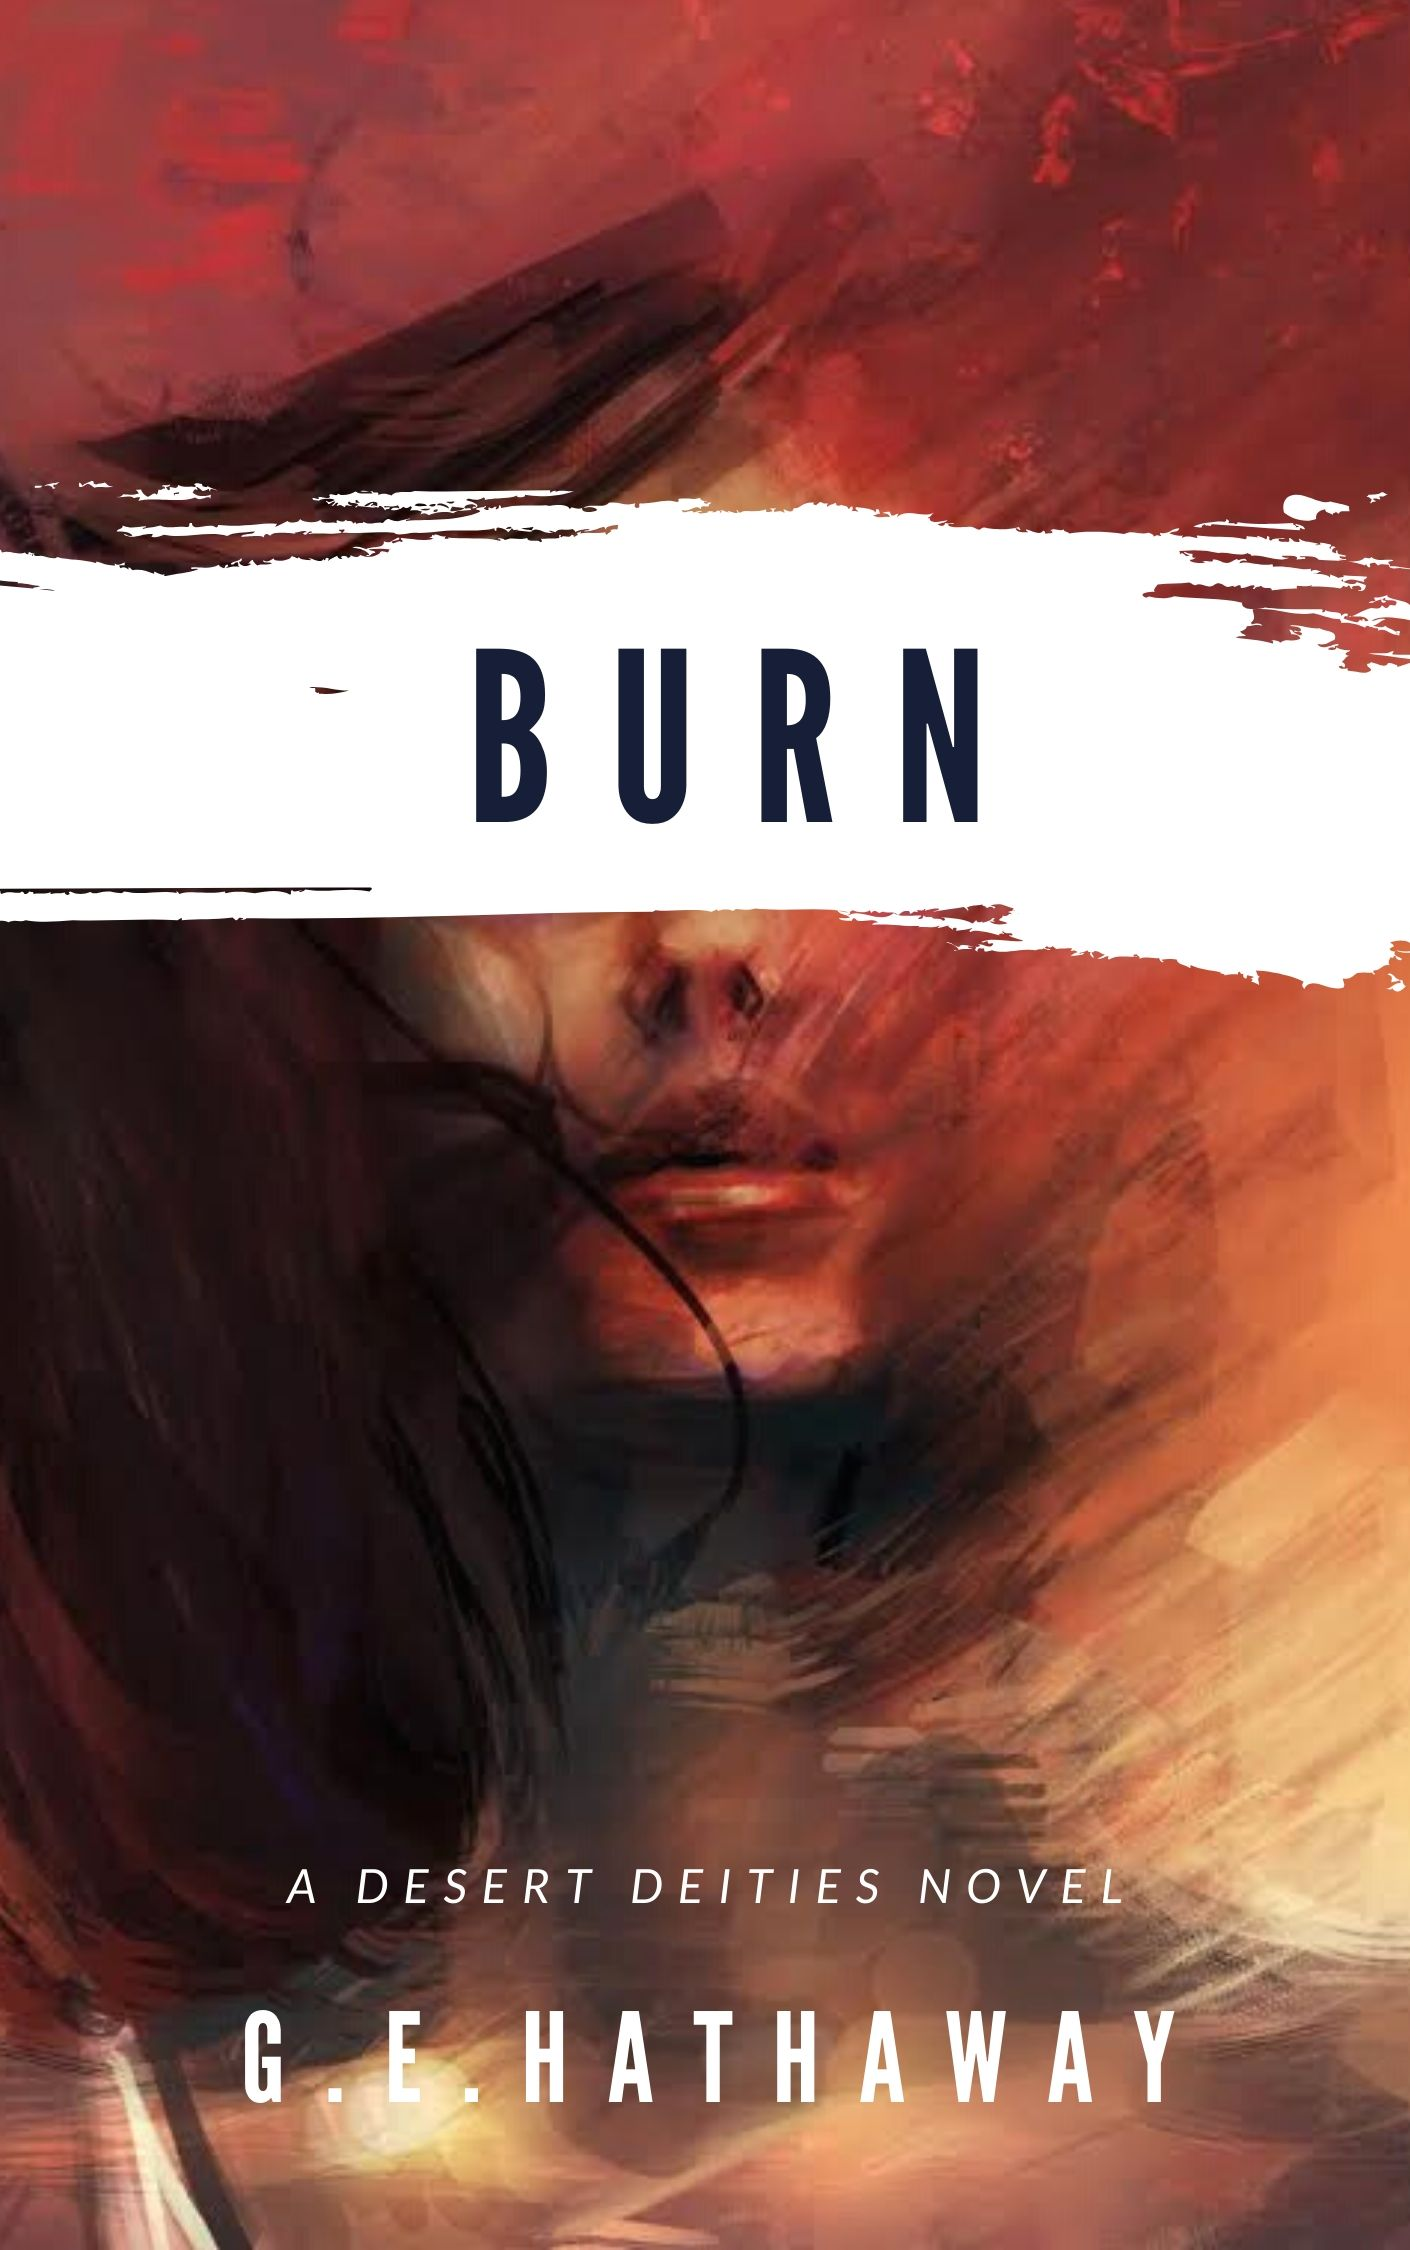 Burn ecover - G.E. Hathaway - Vickie L. H.